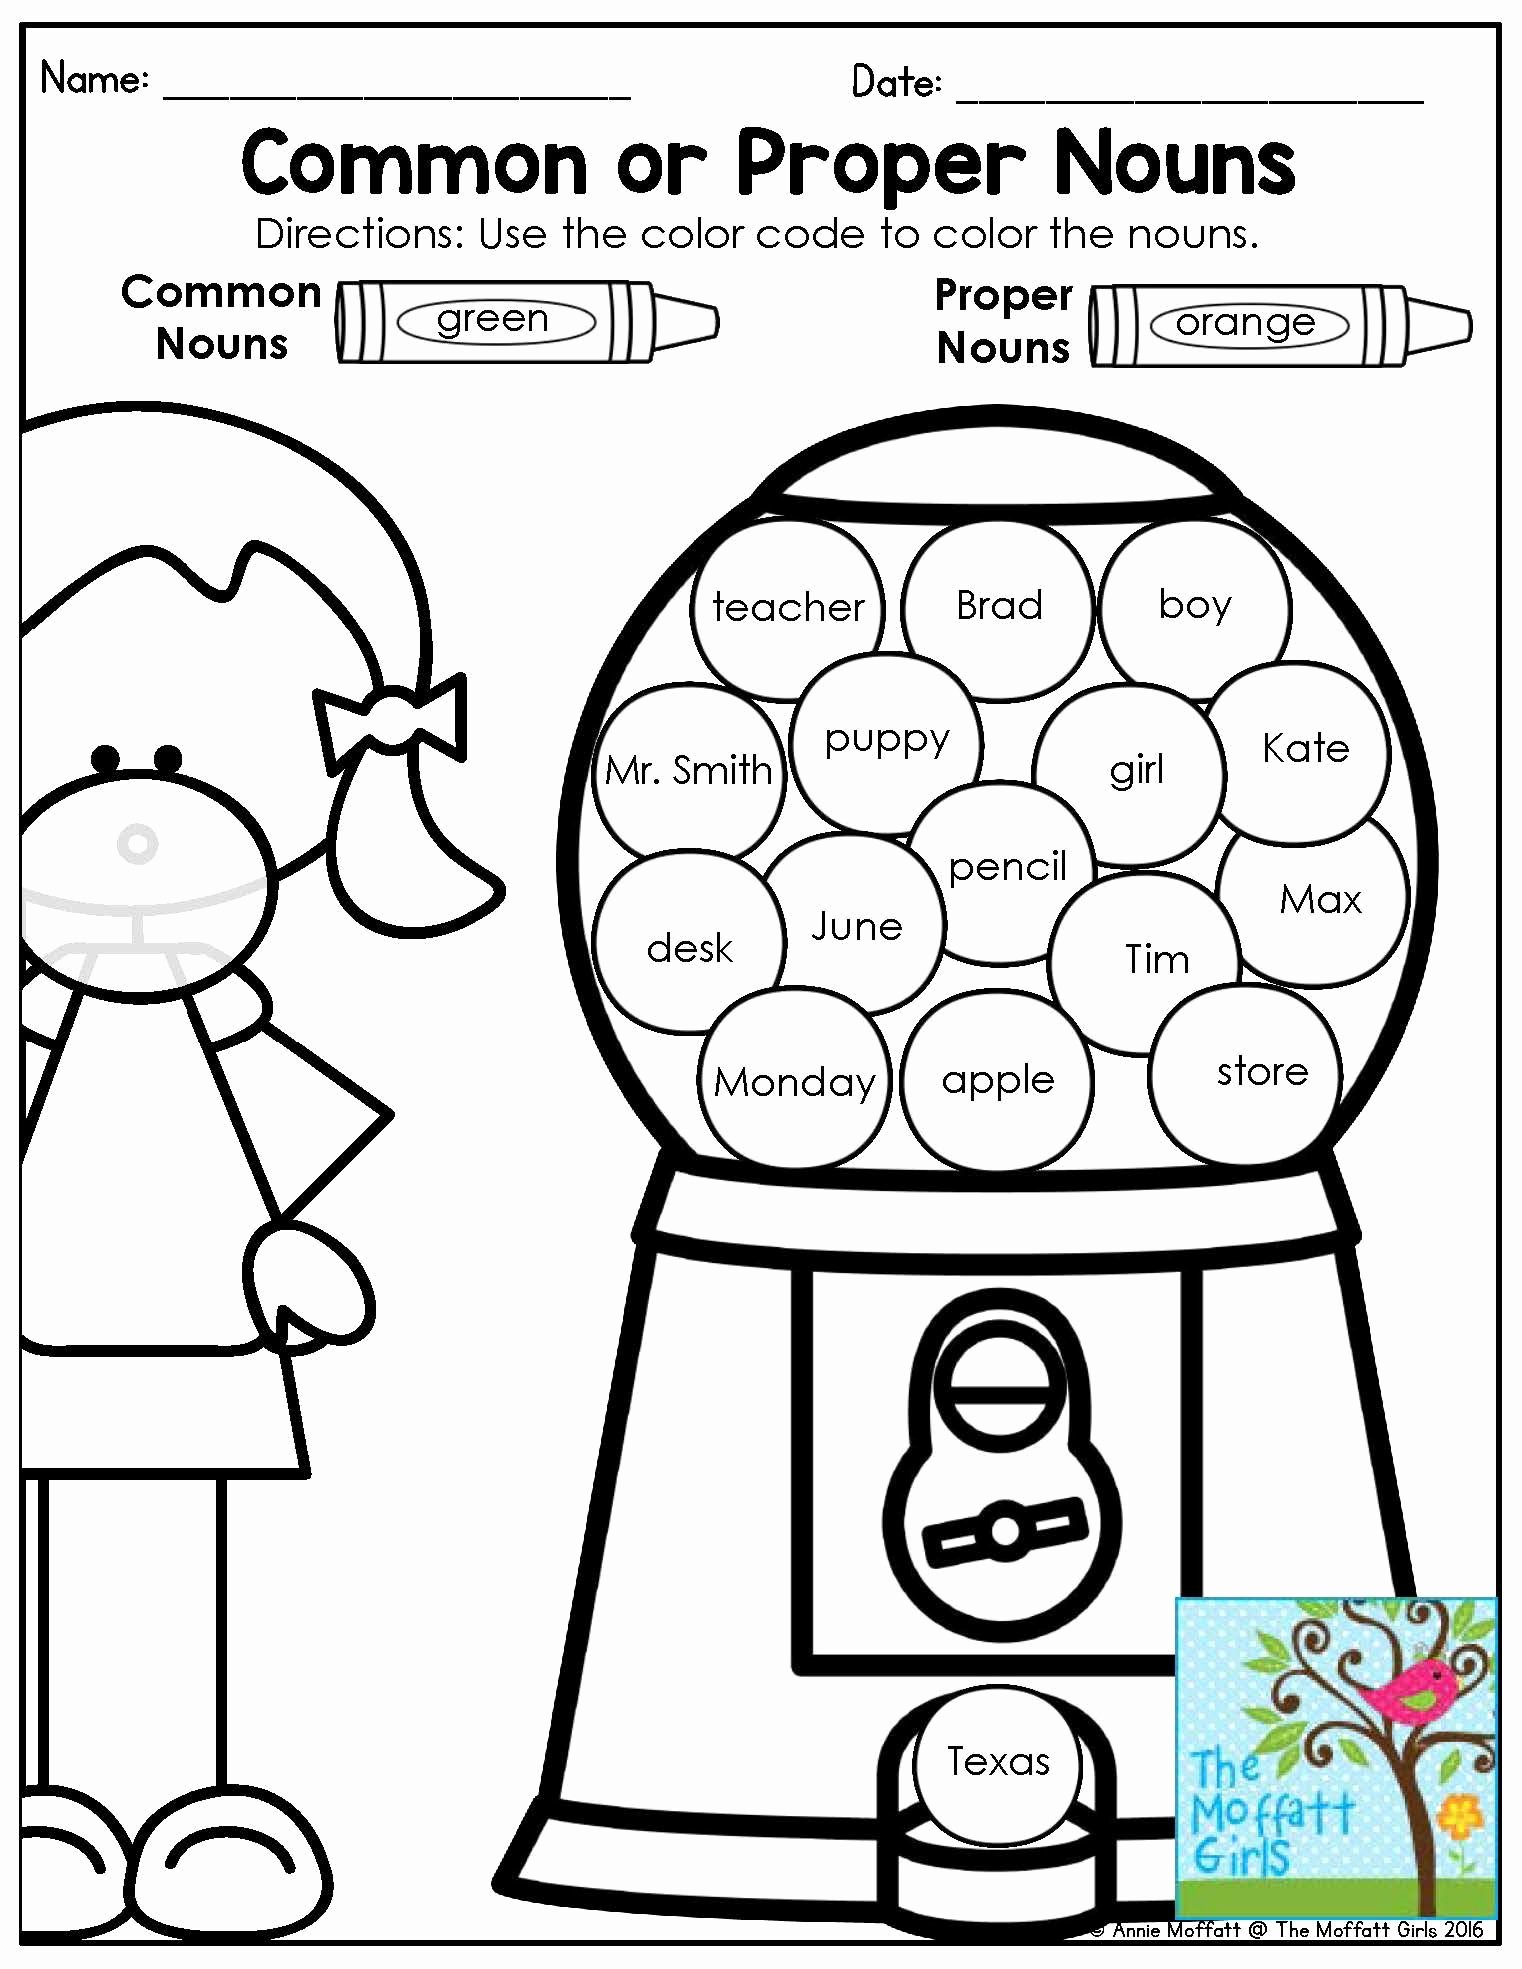 Proper Nouns Worksheet 2nd Grade Fresh Mastering Grammar and Language Arts